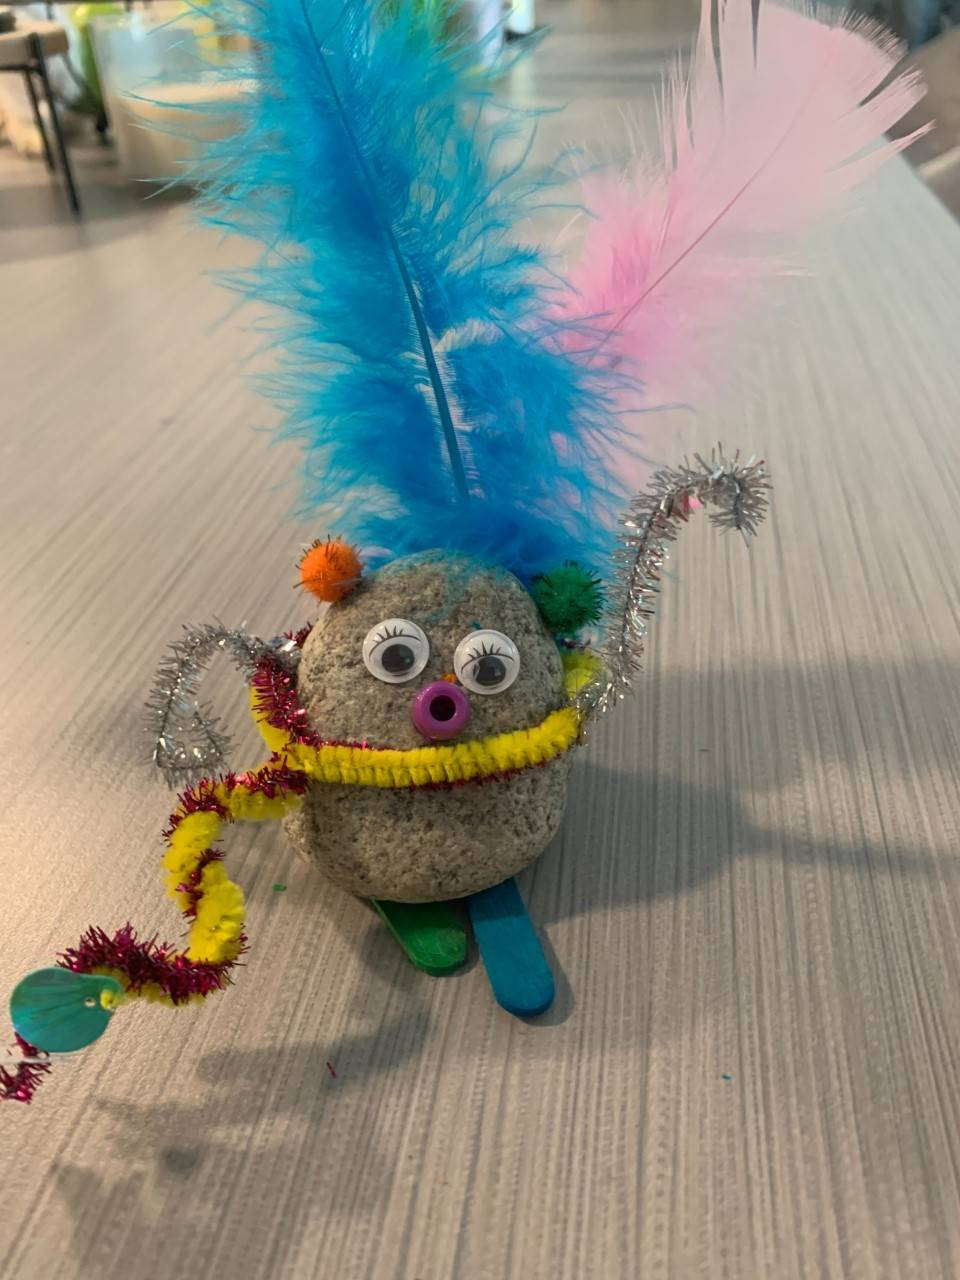 A pet rock stands with pipe cleaners and feathers